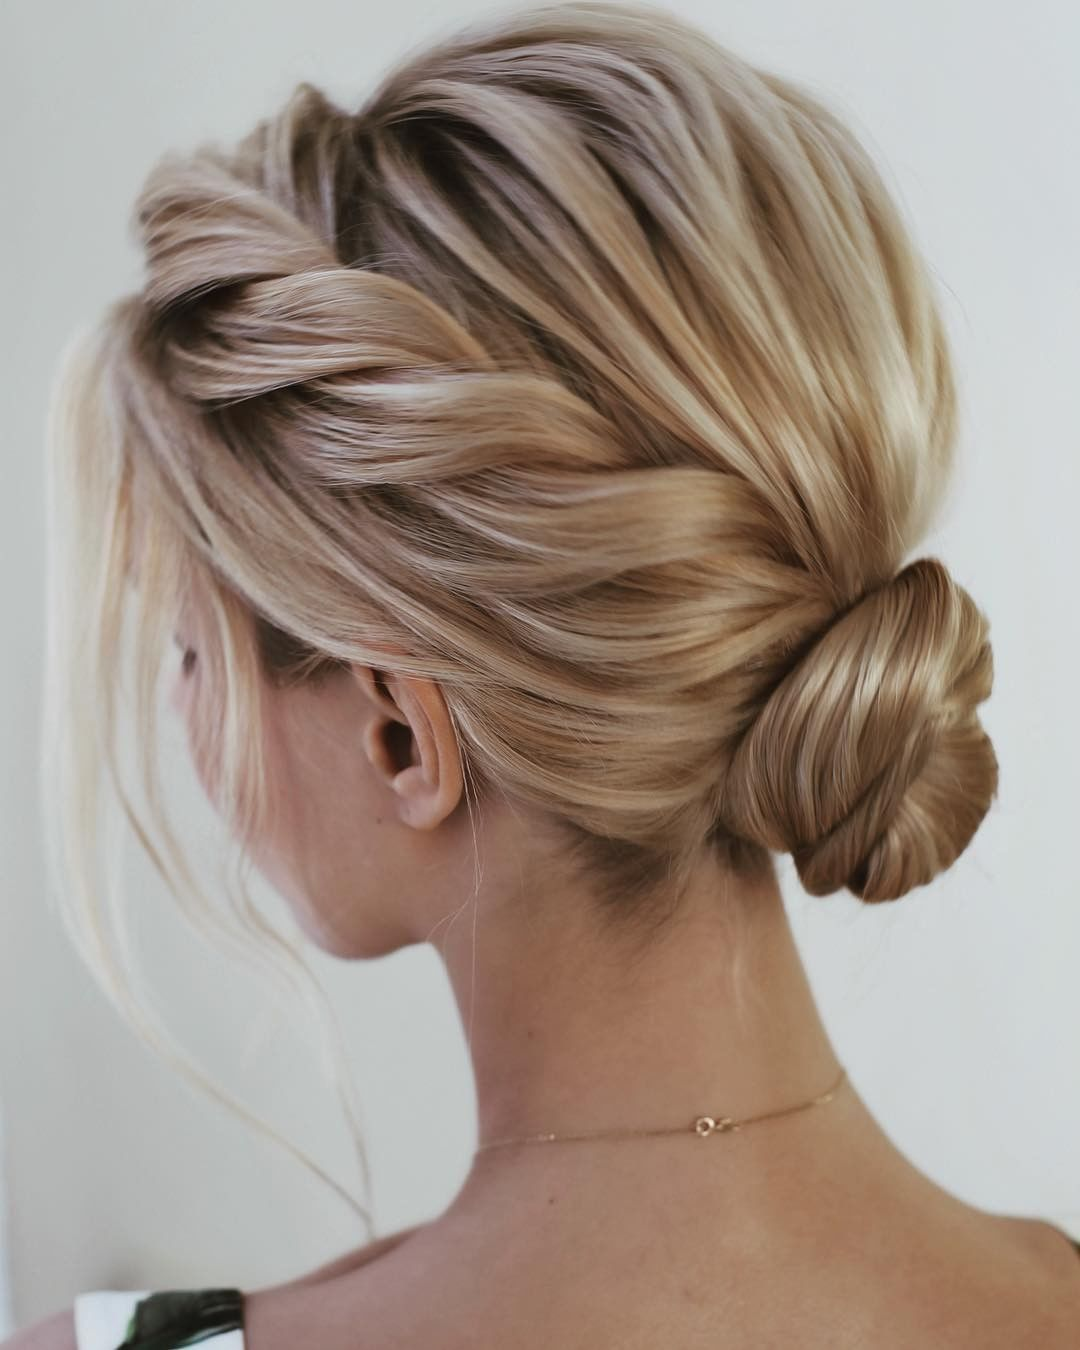 20 Stylish Updo Hairstyles That You Will Want To Try Latest Hair Trends 2019 Long Weddin Short Hair Up Prom Hairstyles For Short Hair Braids For Short Hair